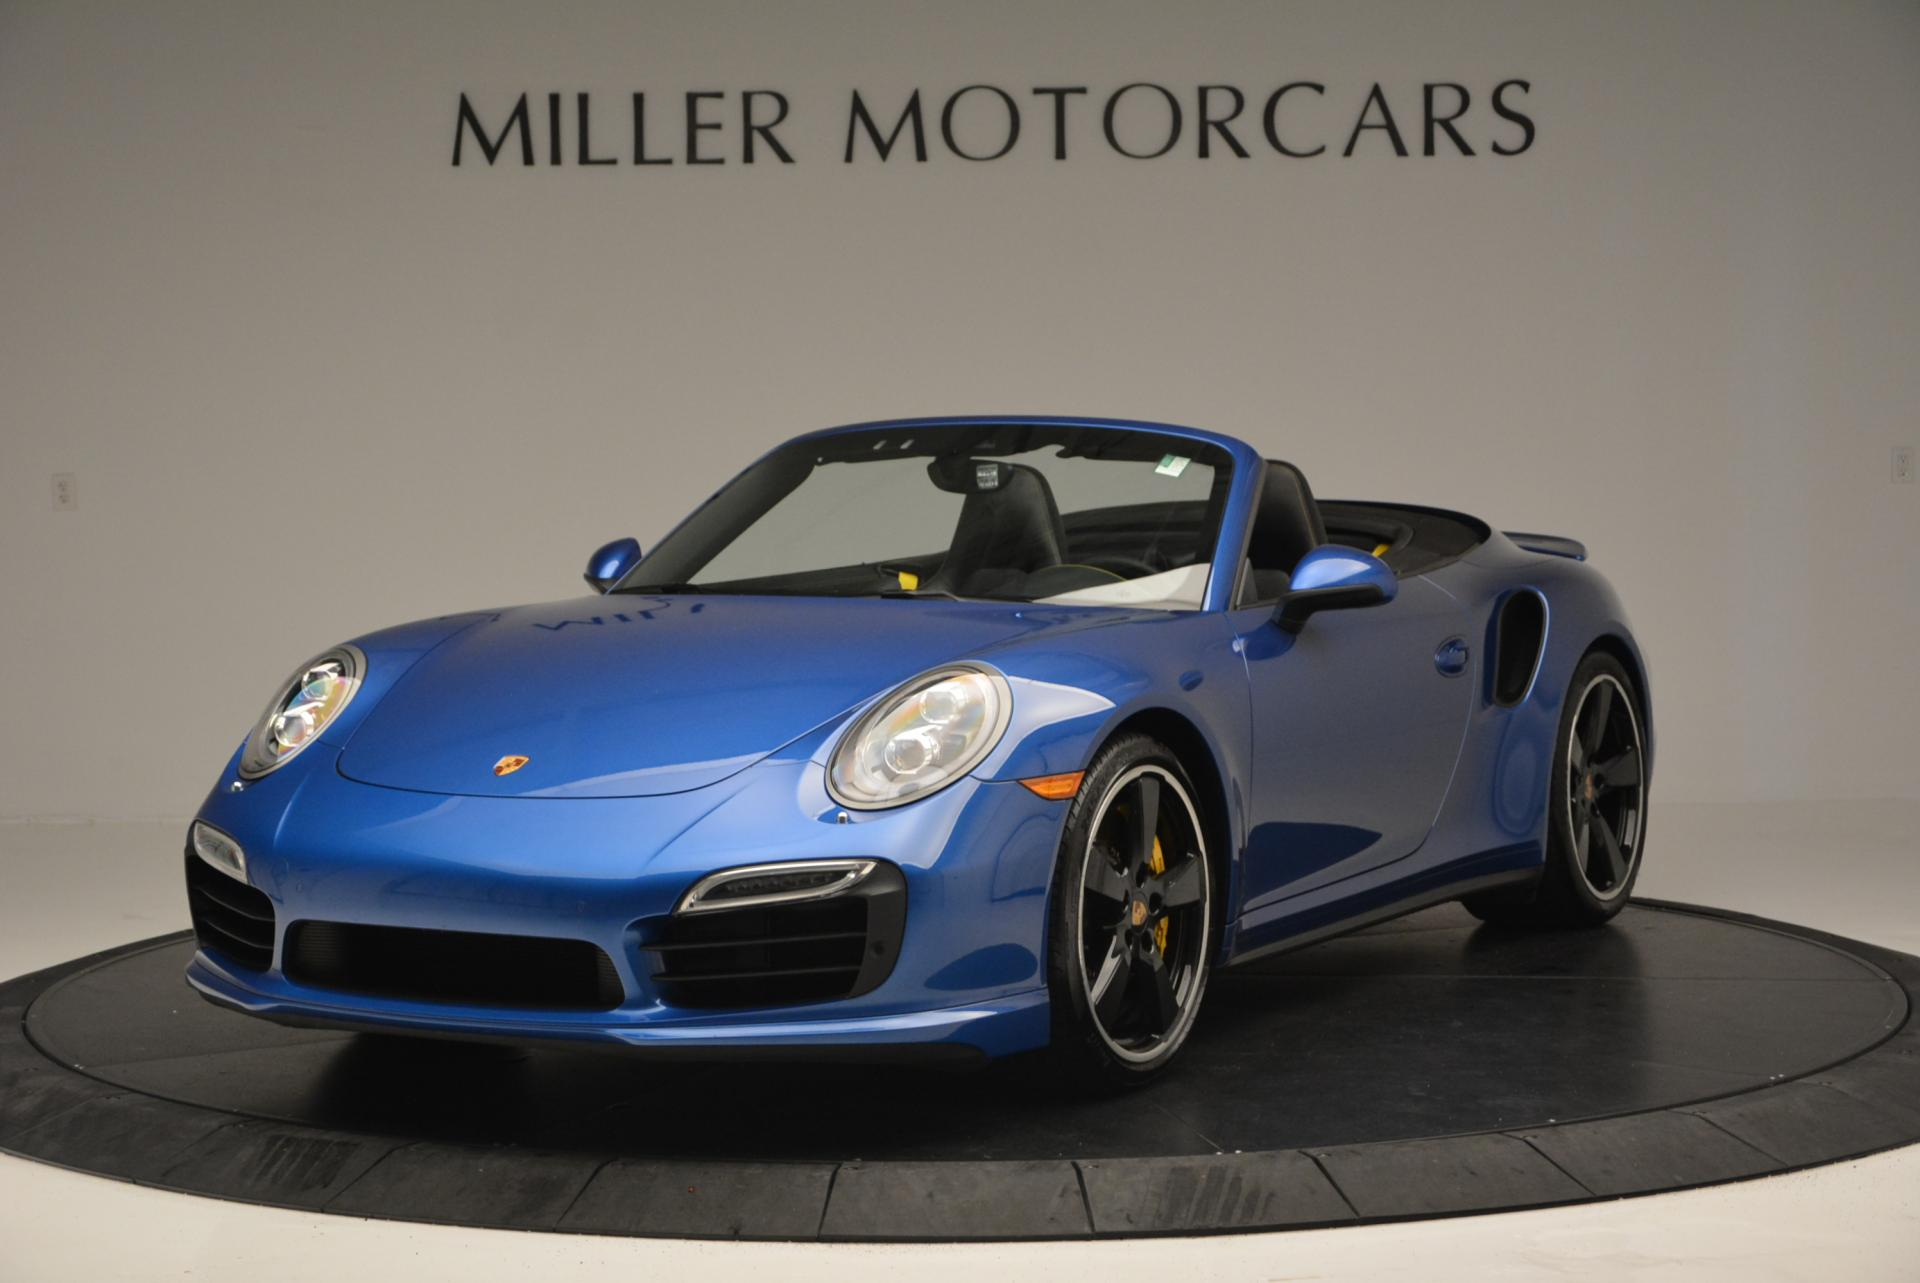 Used 2014 Porsche 911 Turbo S for sale Sold at Maserati of Westport in Westport CT 06880 1